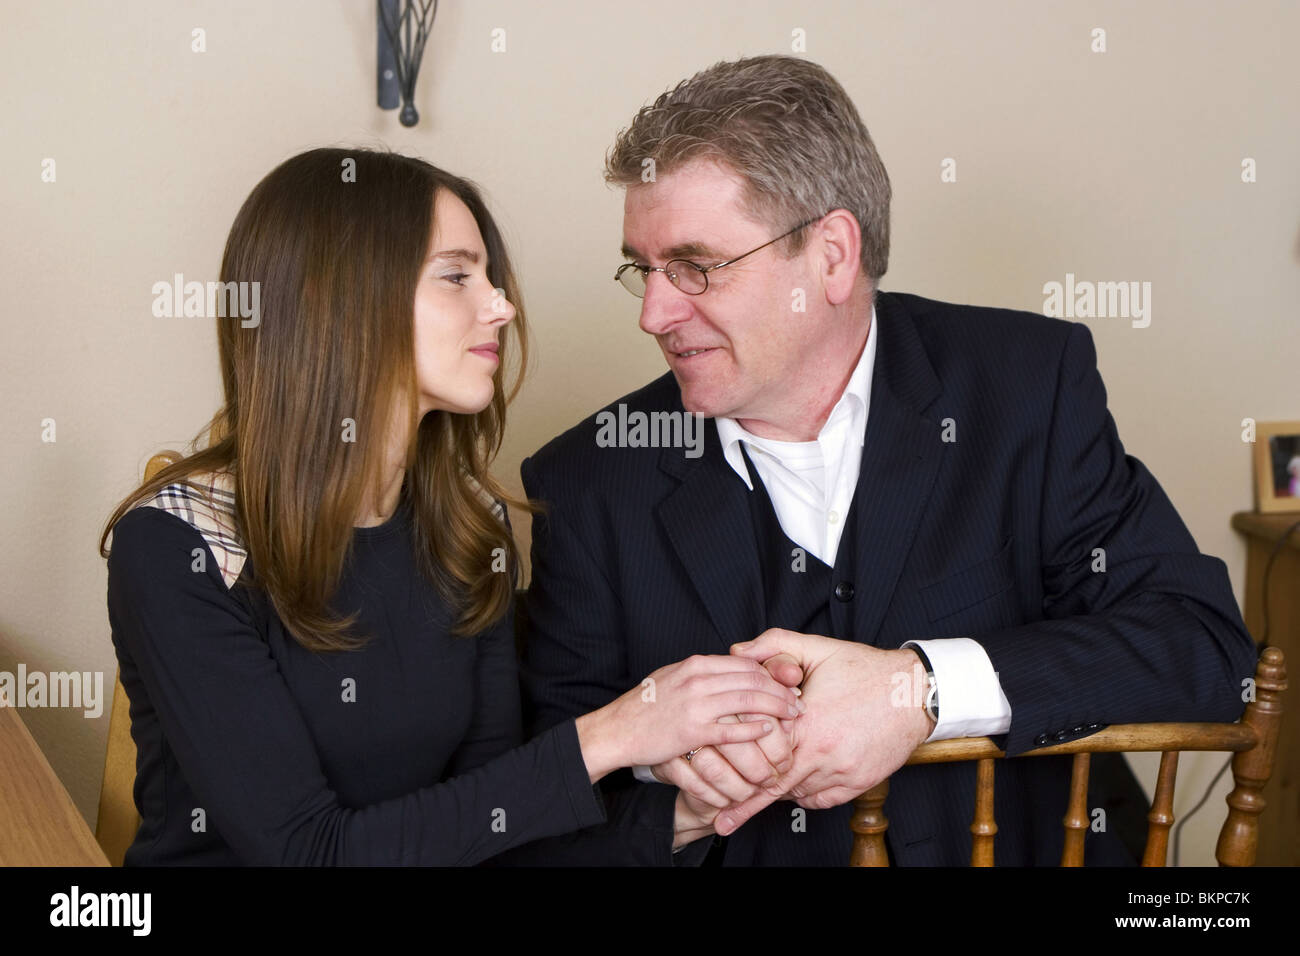 lovers-couple-young-woman-with-older-man